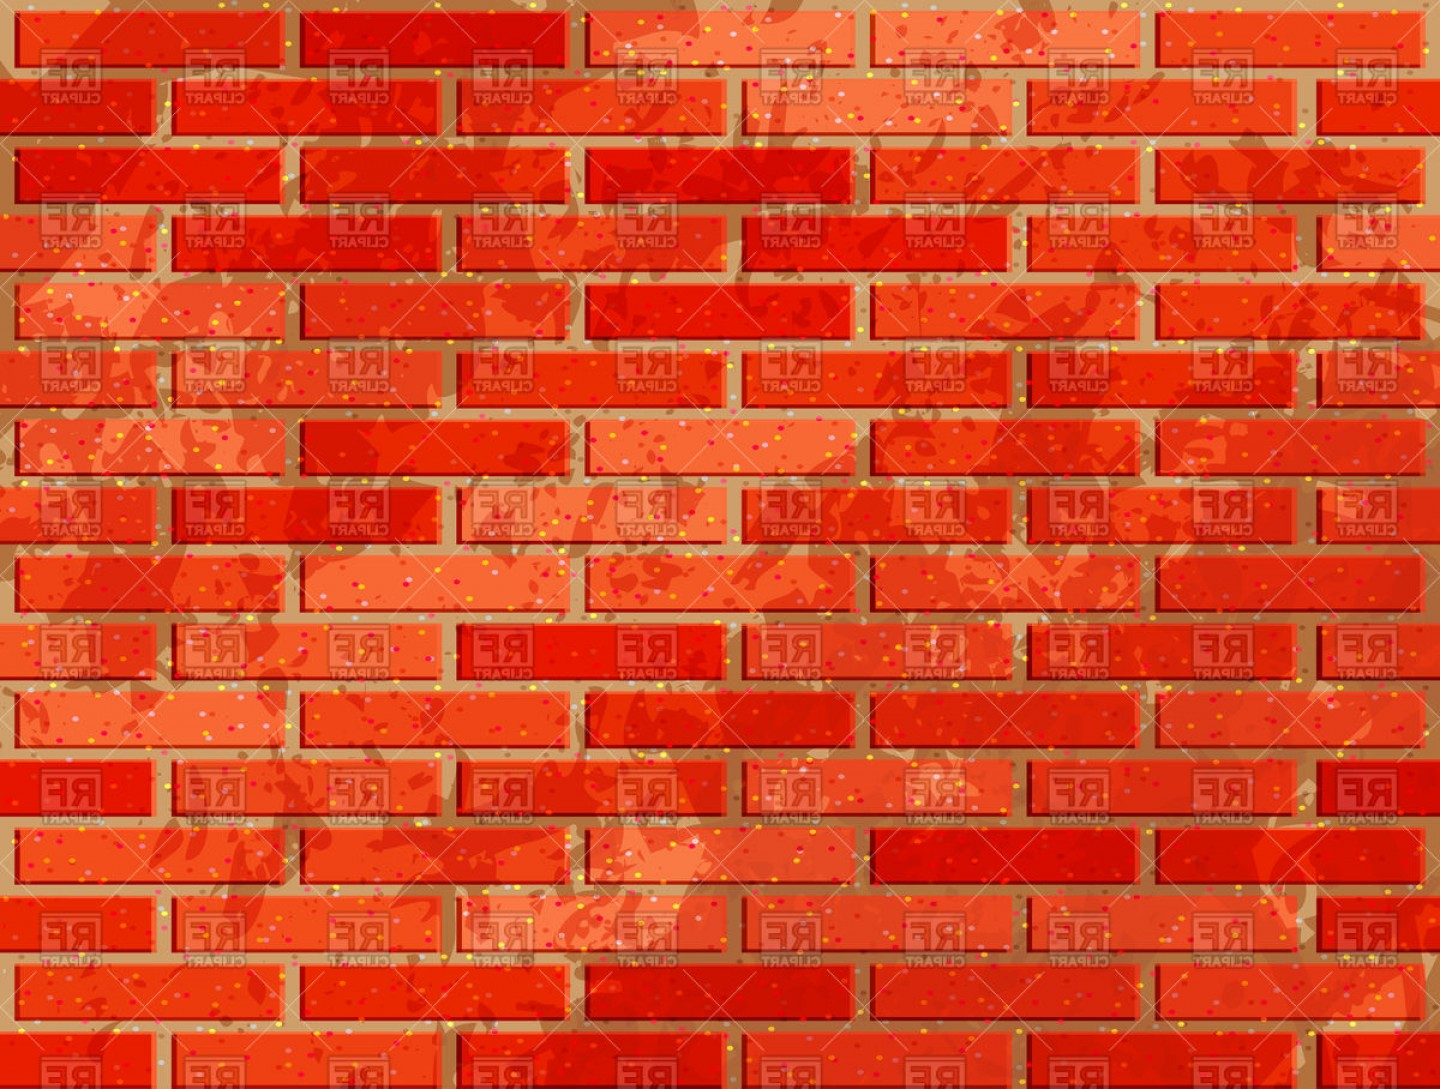 Red Brick Wall With Noise Textures Vector Clipart.